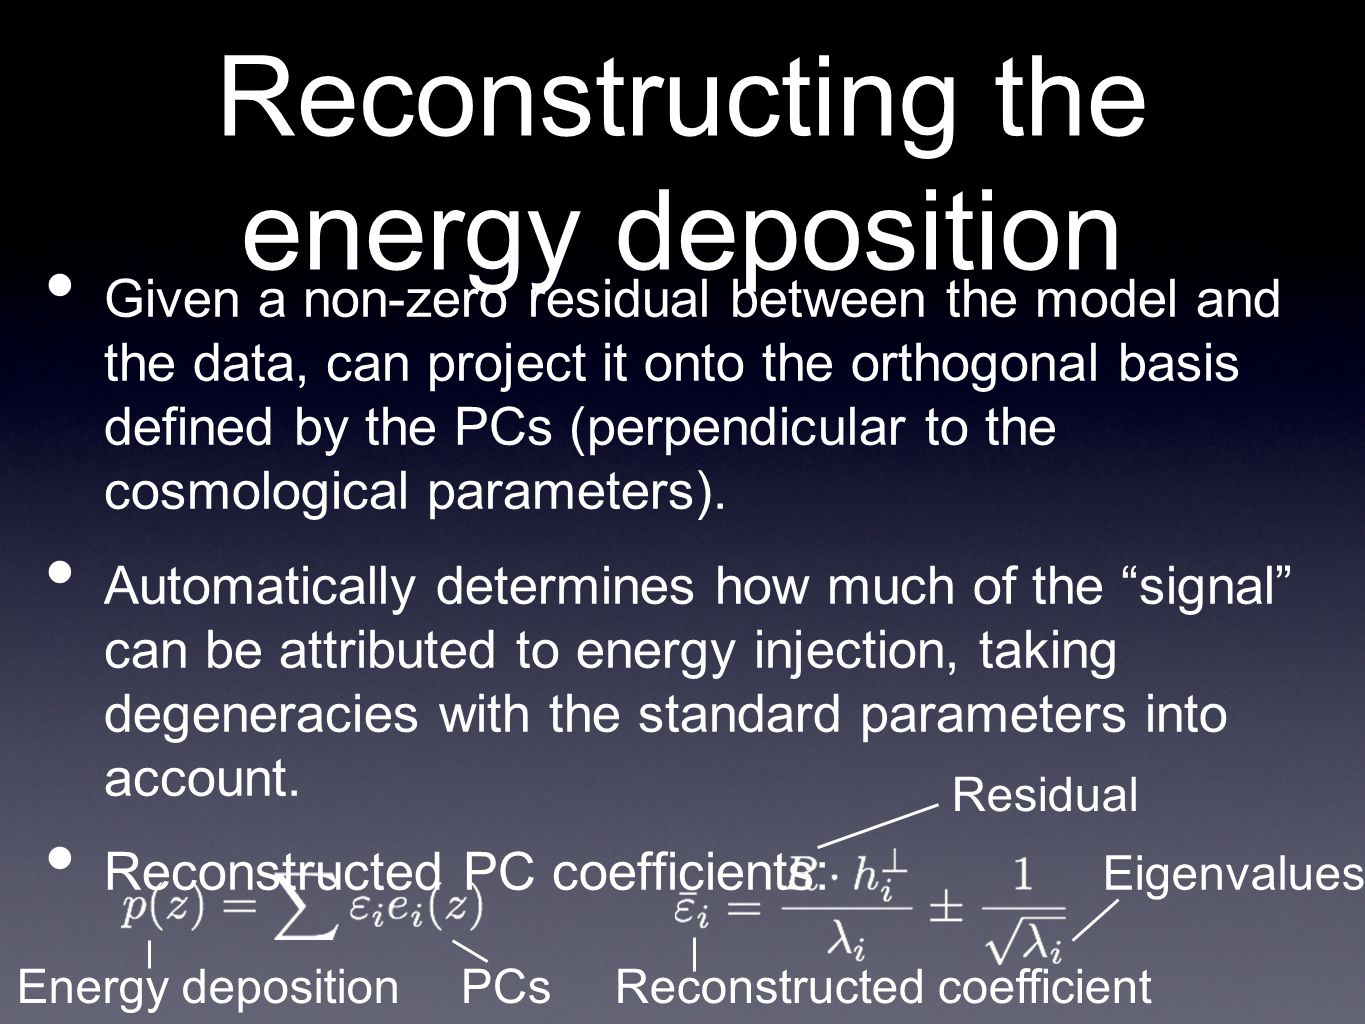 Reconstructing the energy deposition • Given a non-zero residual between the model and the data, can project it onto the orthogonal basis defined by the PCs (perpendicular to the cosmological parameters).